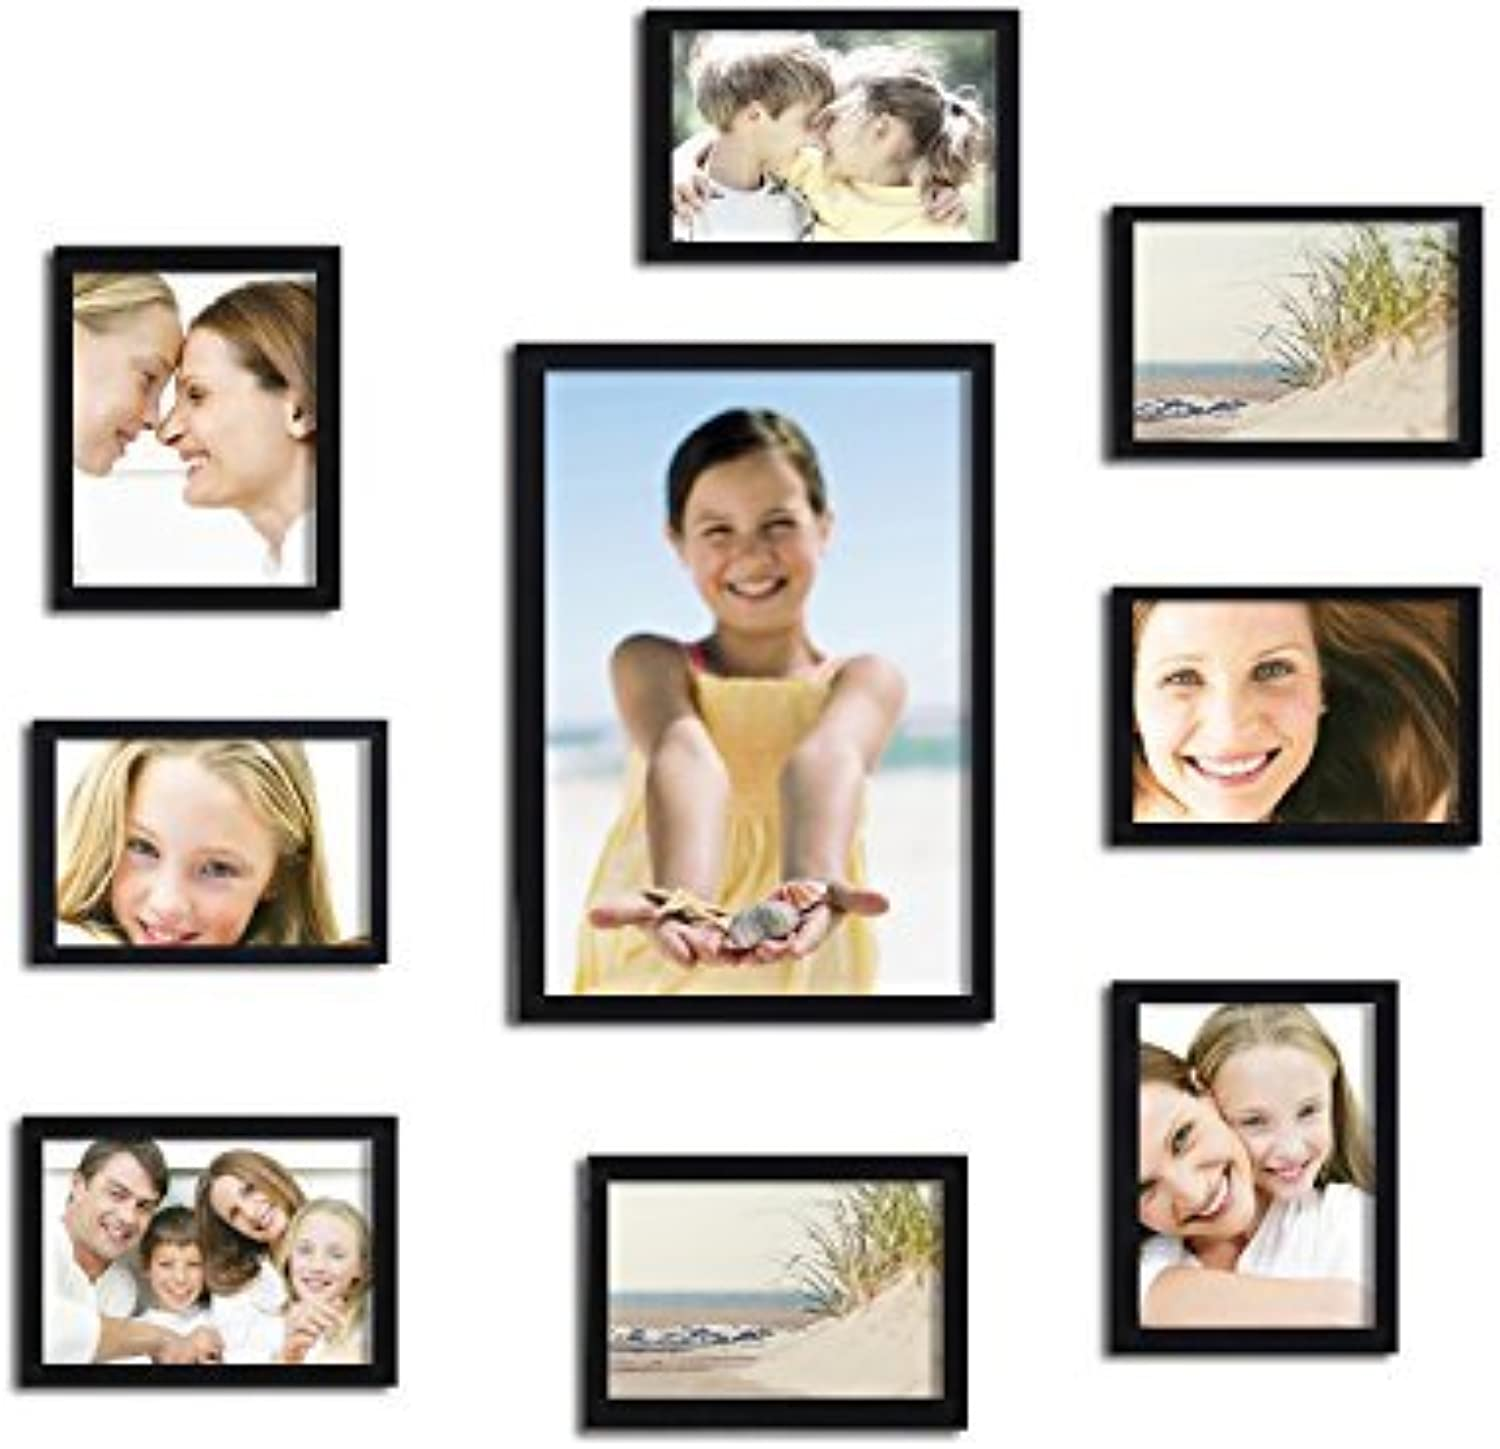 Adeco PF0053 Decorative Black Wood 10Piece Picture Photo Frame Set  8-4x6 , 1-6x8 , 1-8x12 , Wall Hanging or Table Top, Black